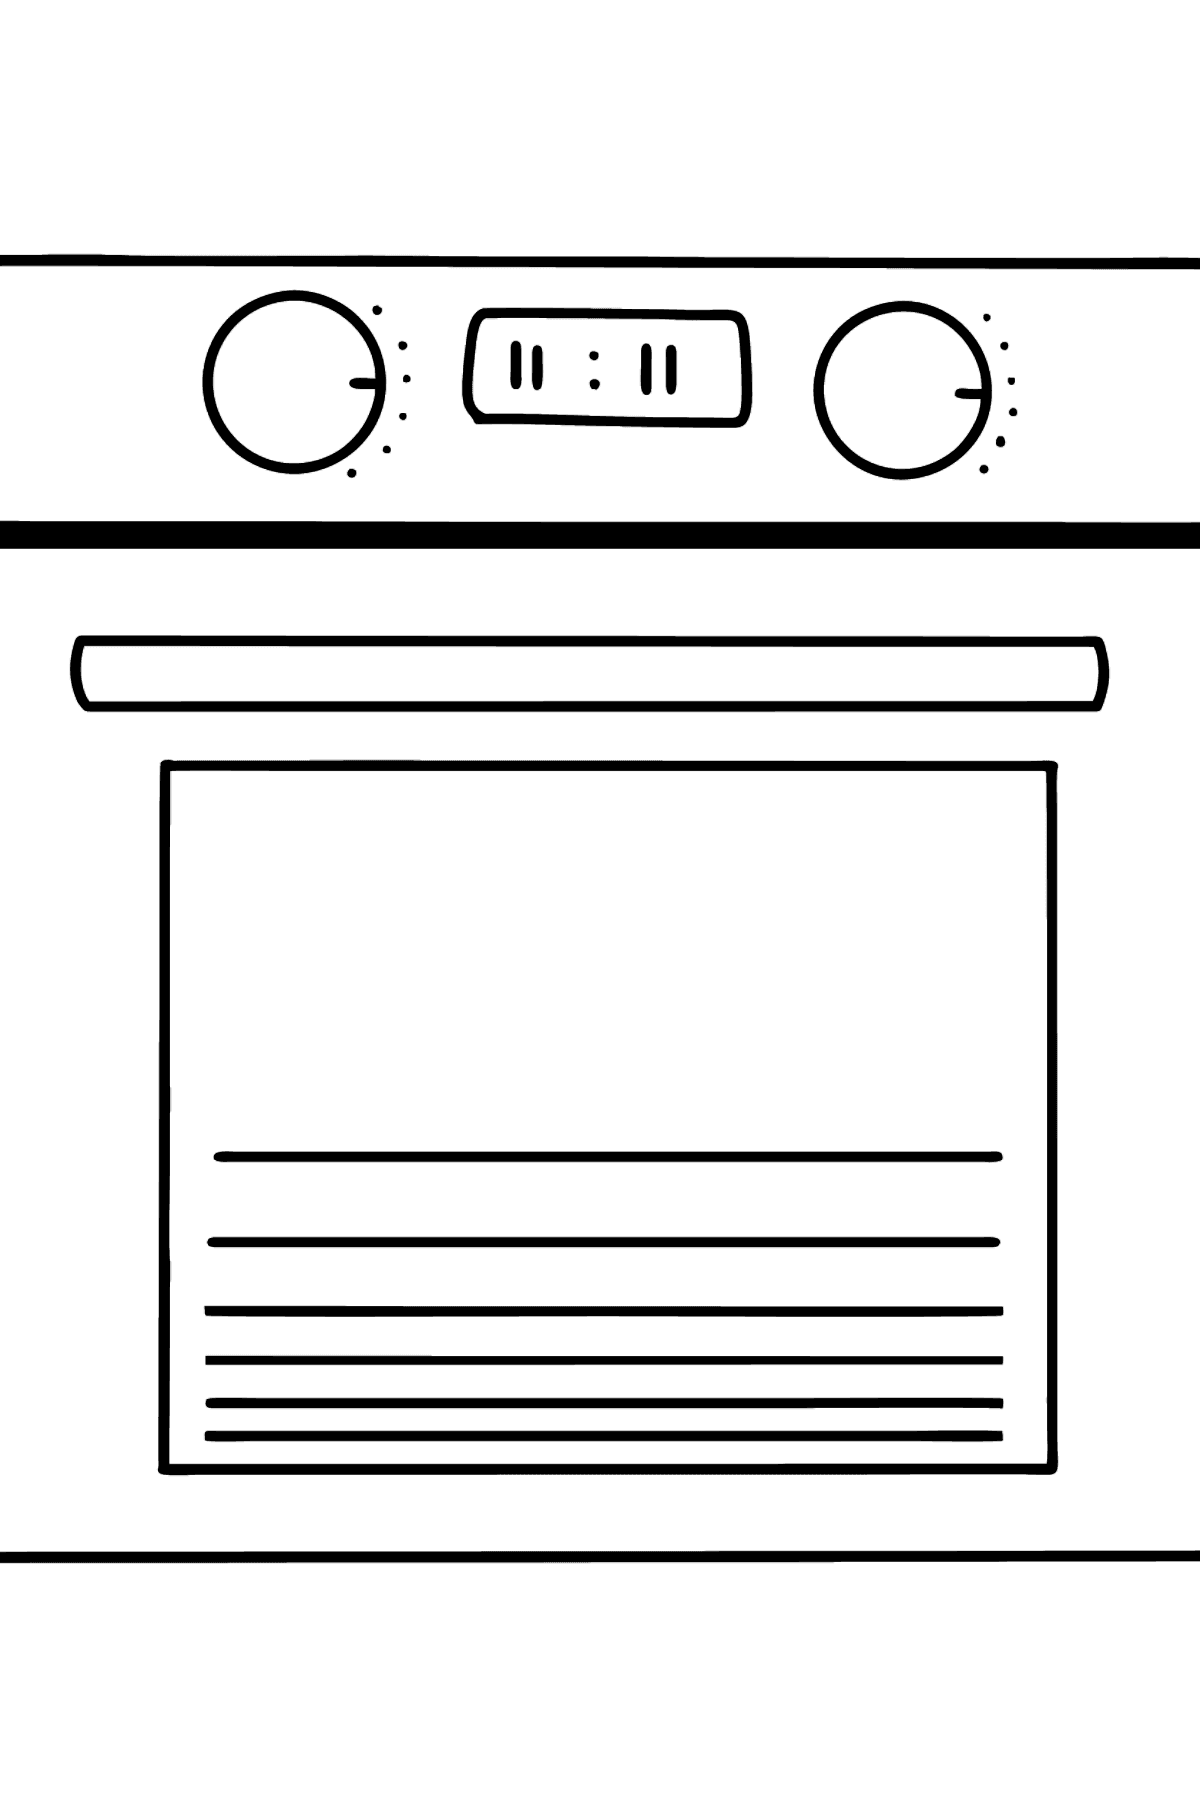 Oven coloring page - Coloring Pages for Kids